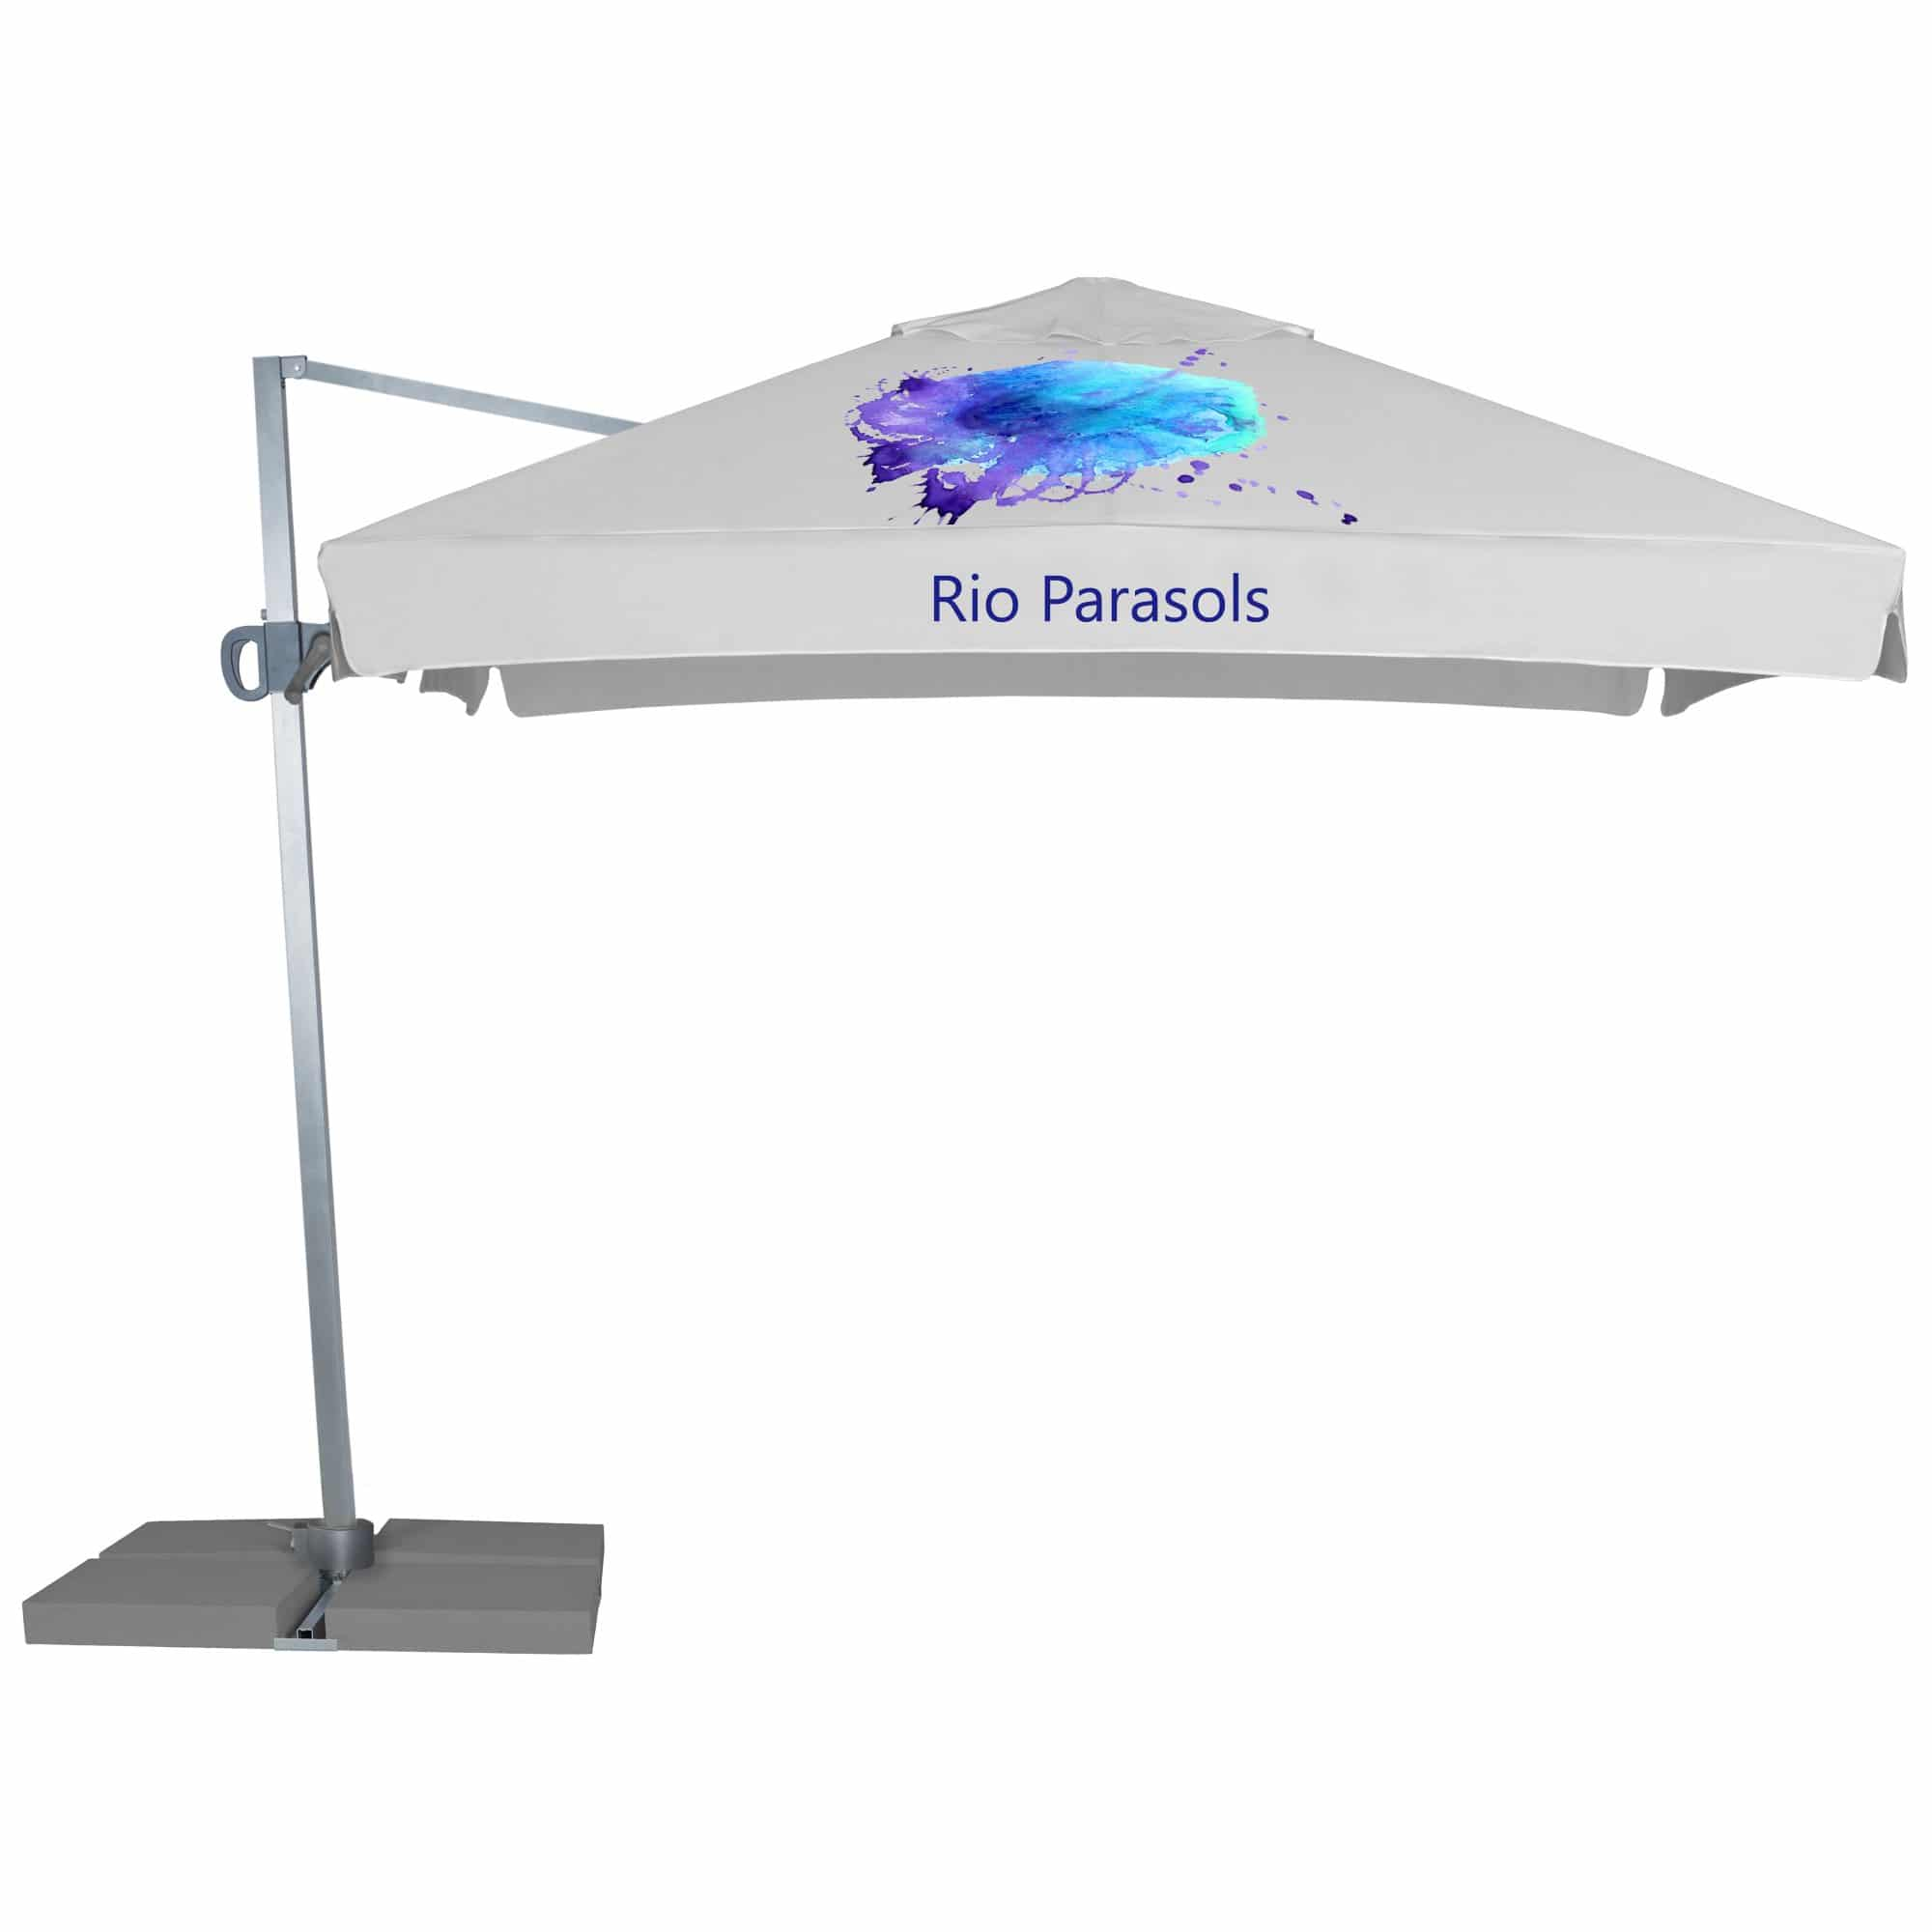 Branded Parasols 3m Cantilever with Valance